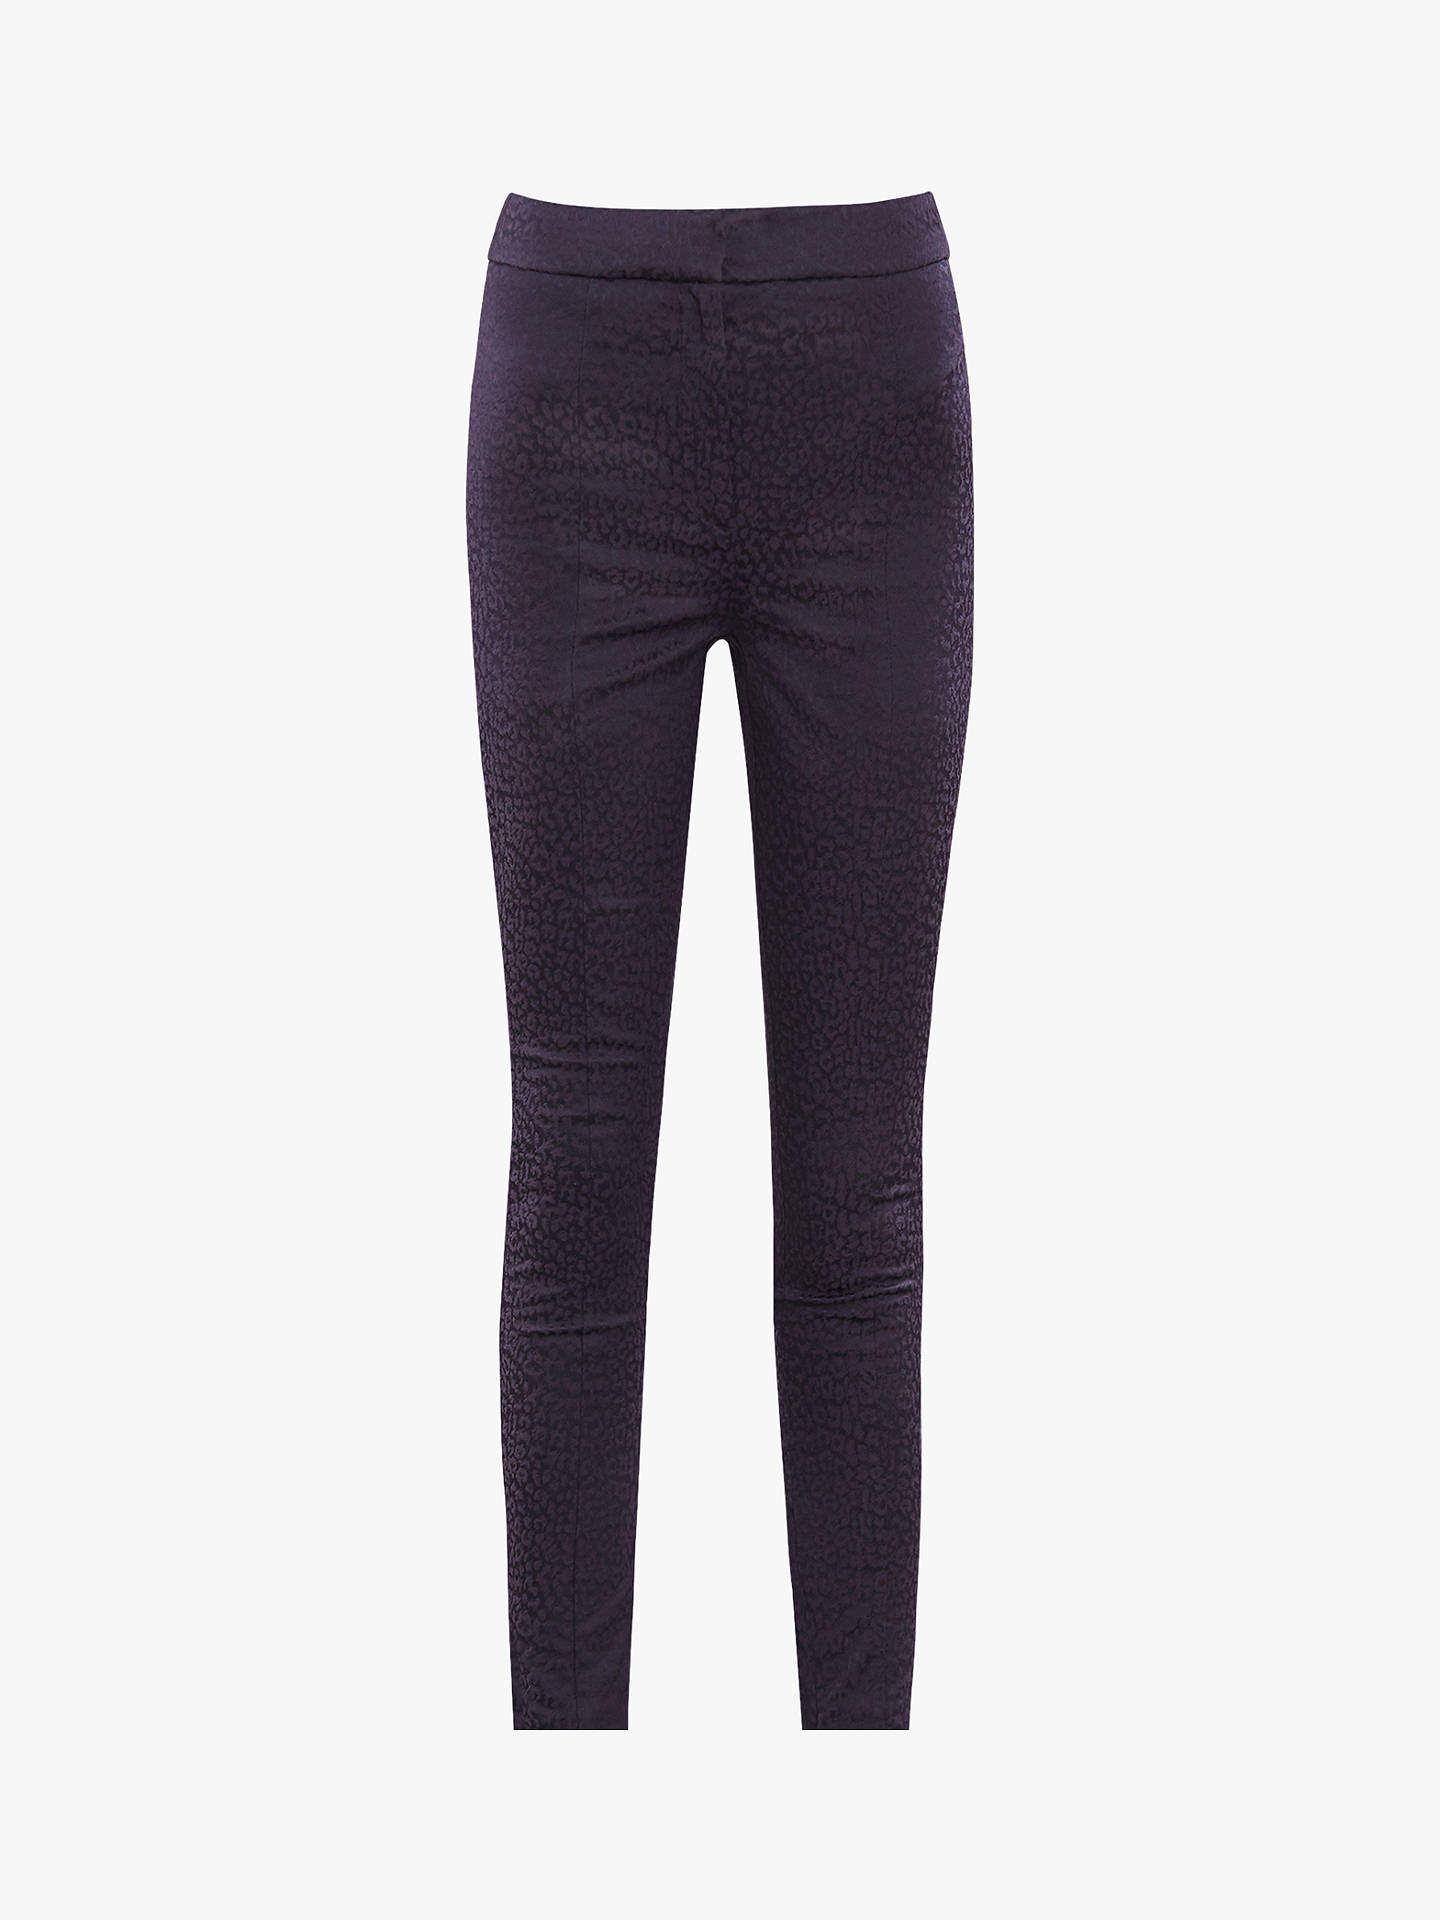 Buy Reiss Lio Leopard Pattern Jacquard Skinny Trousers, Navy, 6 Online at johnlewis.com